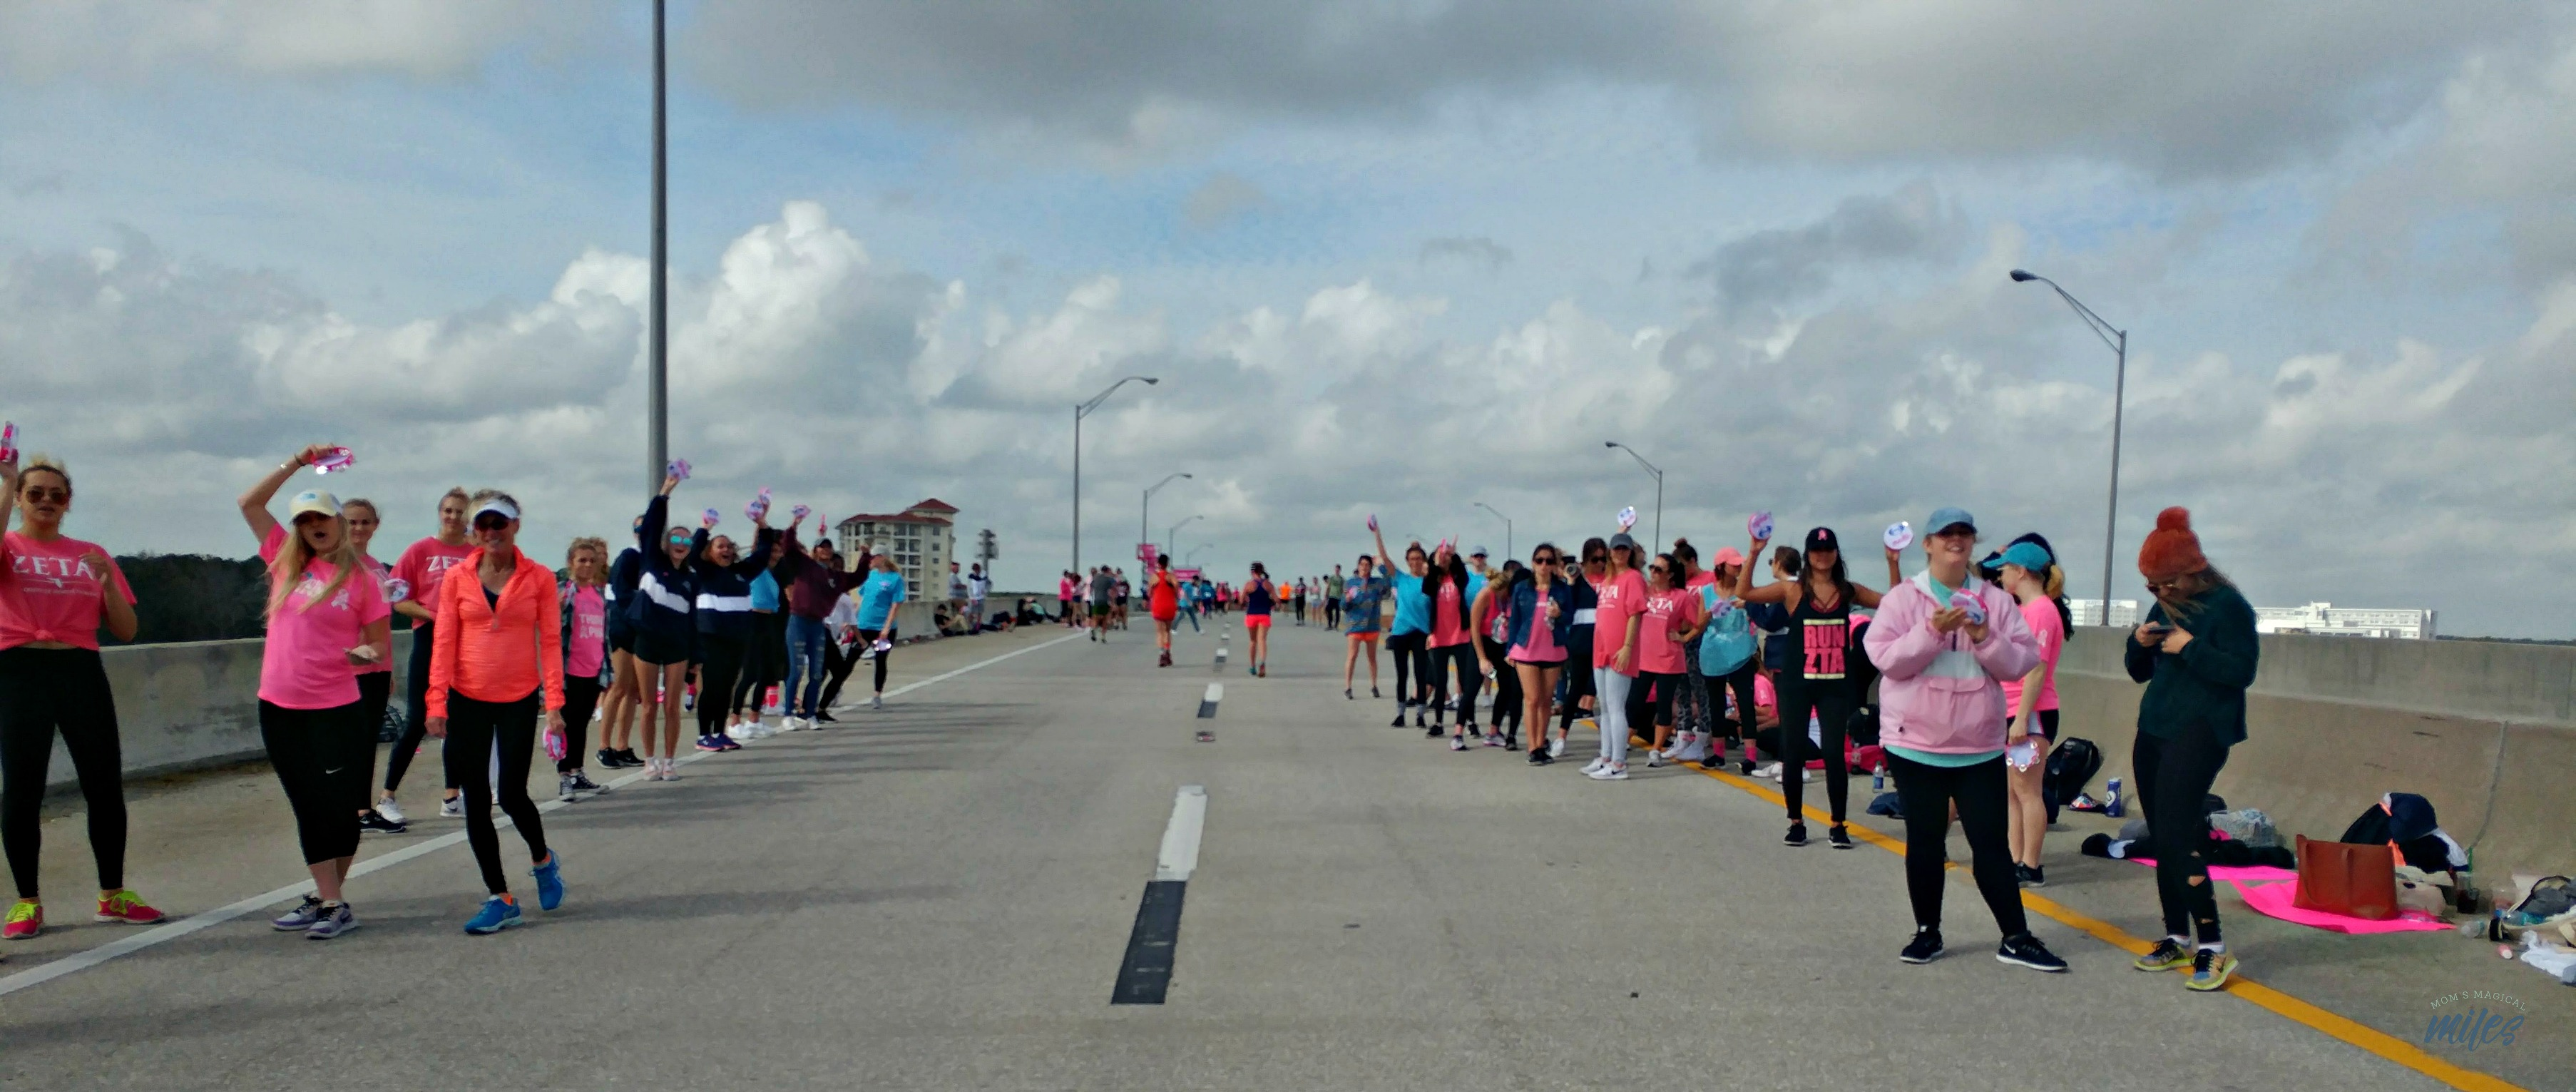 The only hill during the Donna Half in Jacksonville, FL offers some great cheerleaders!